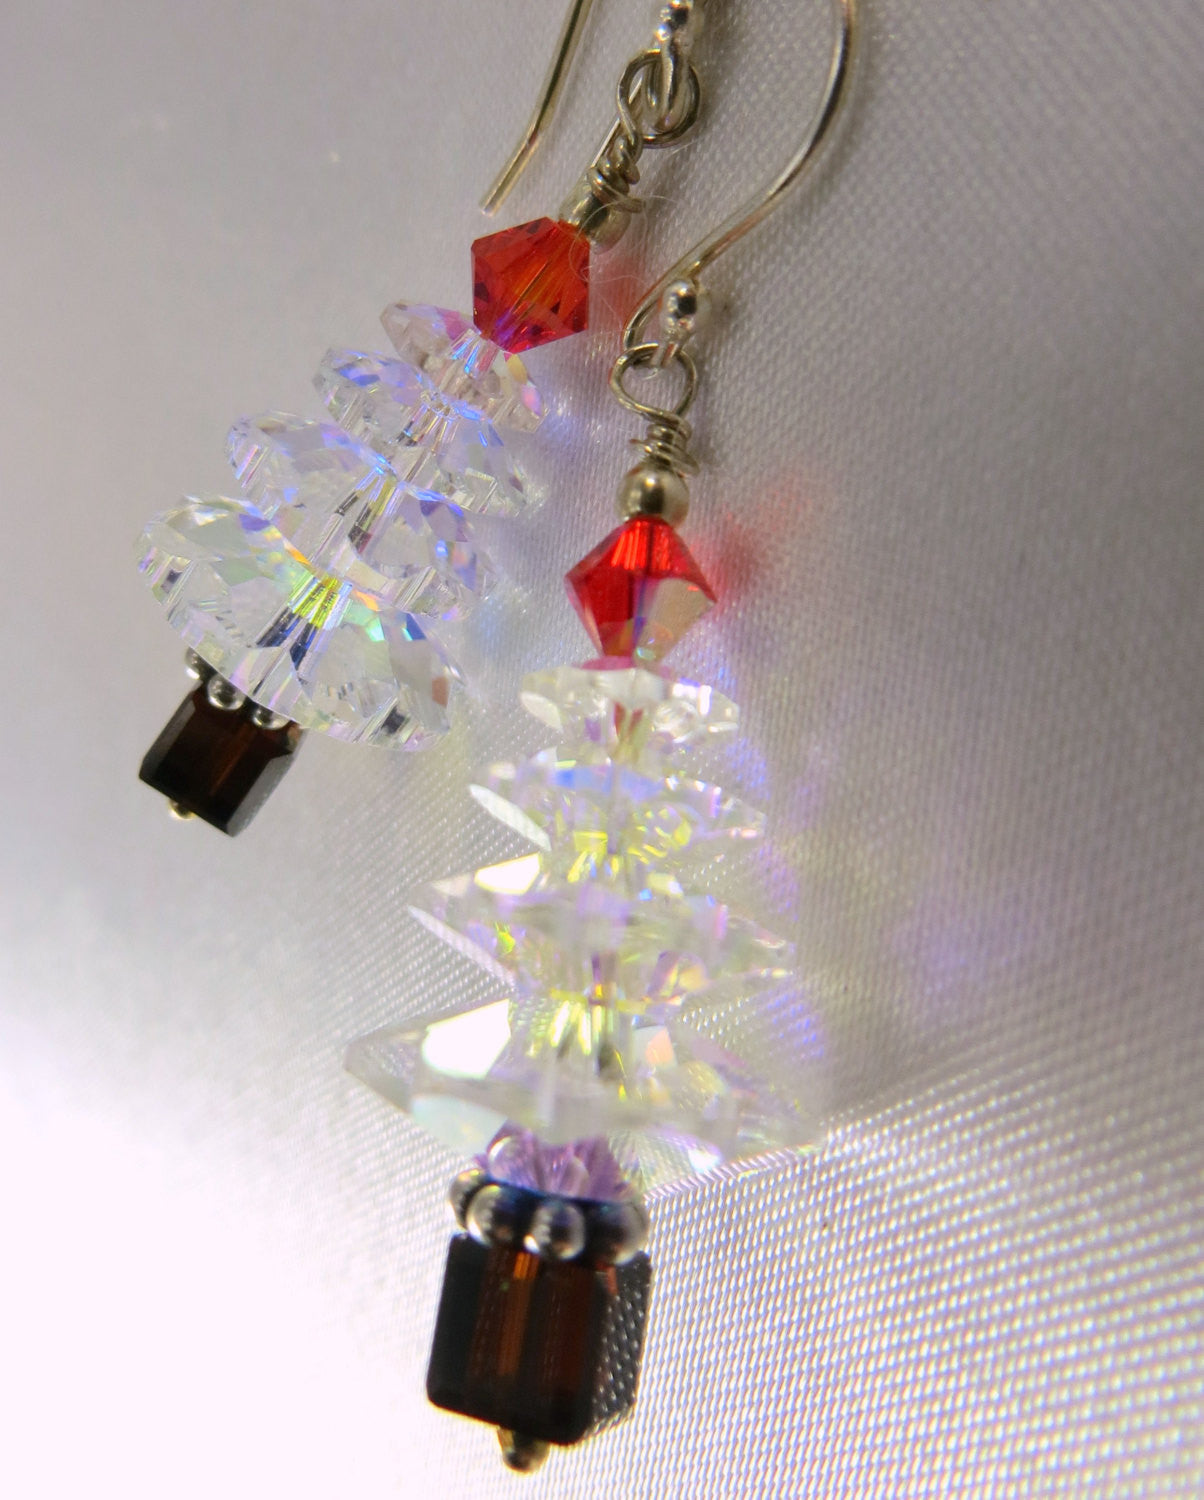 Christmas Tree Earrings in Swarovski Crystal AB, Red and Black on Sterling Silver Wires - Odyssey Creations